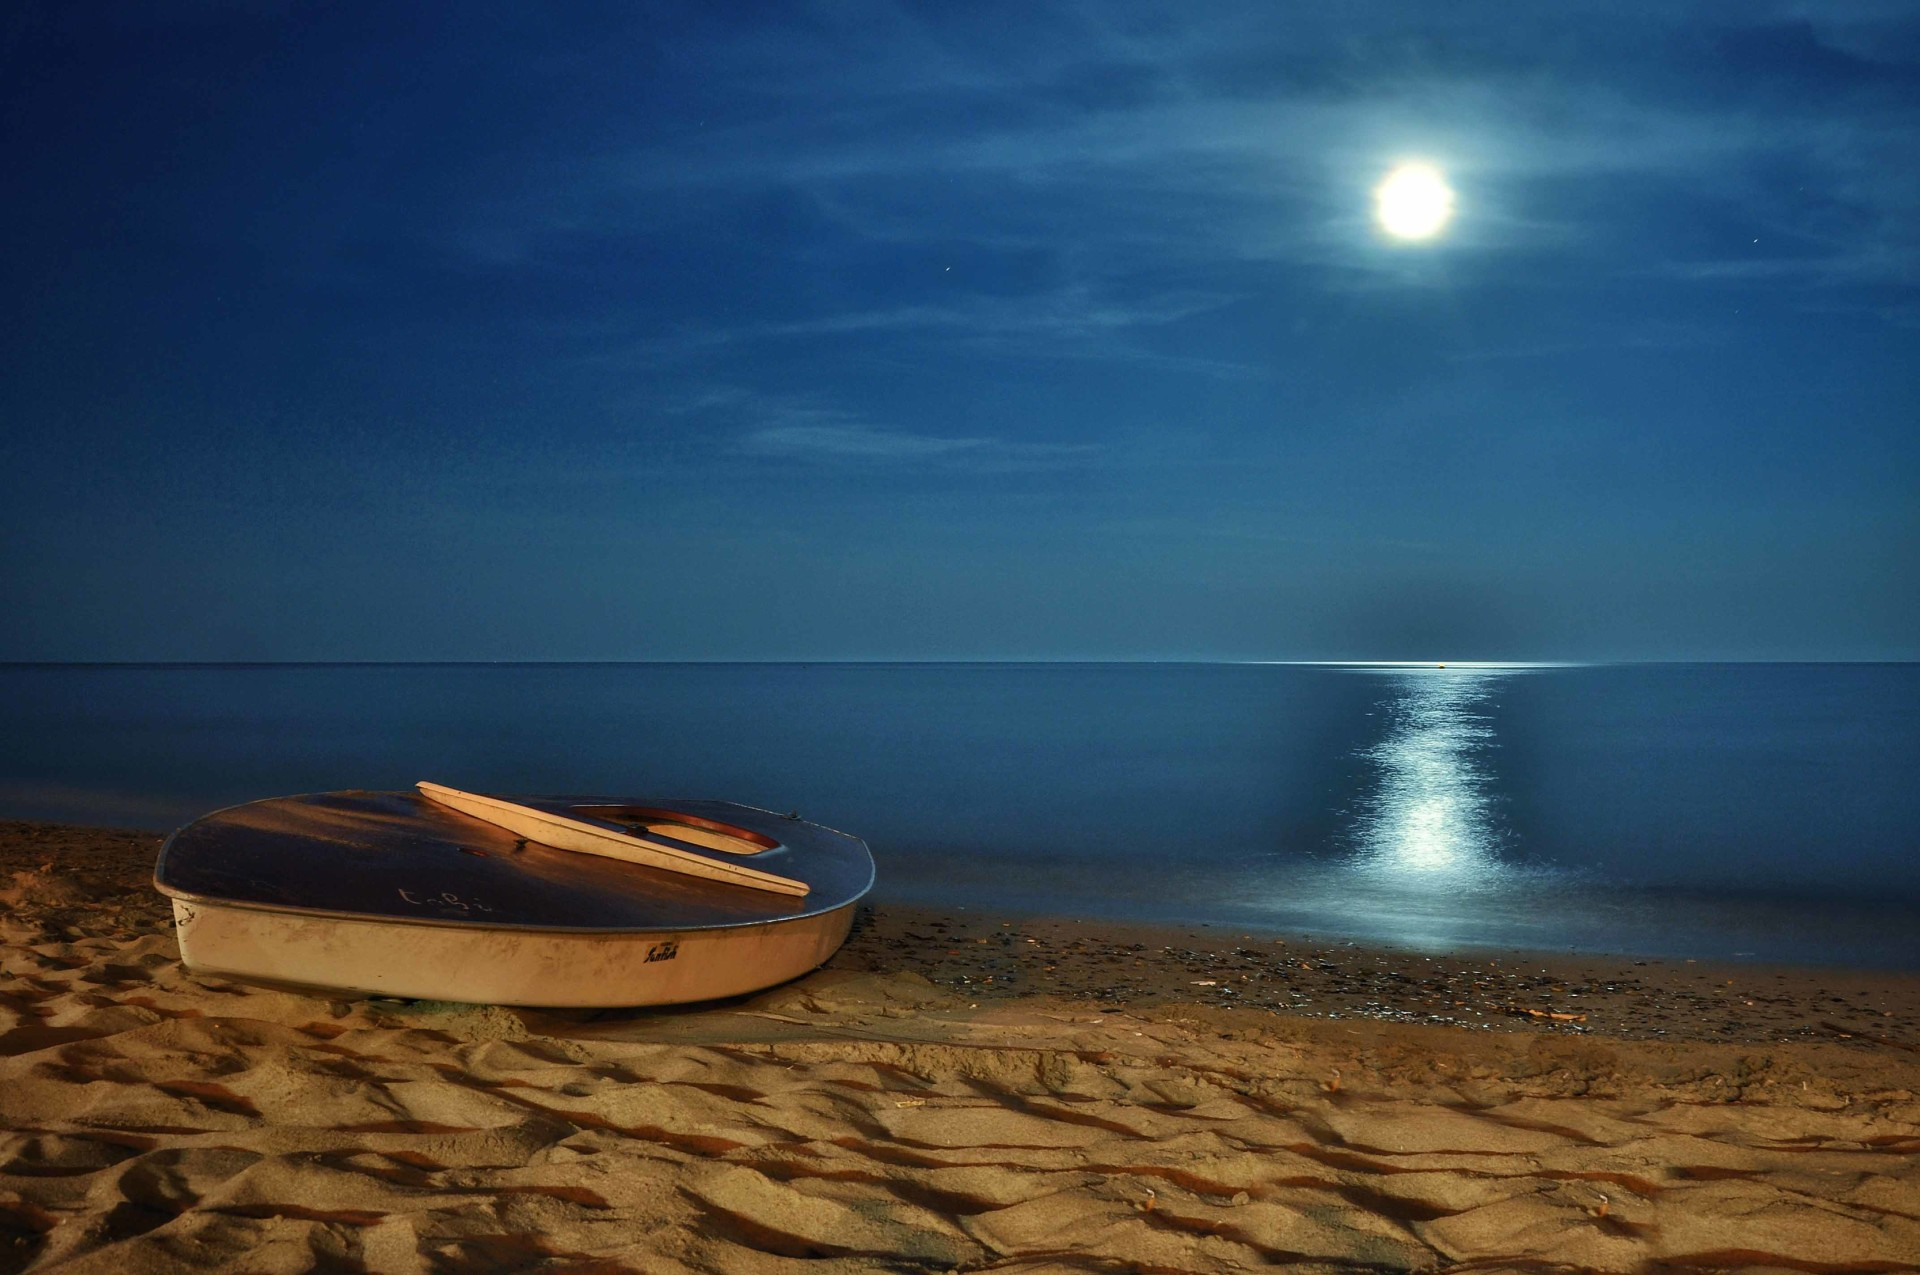 moon lighting small boat on the beach